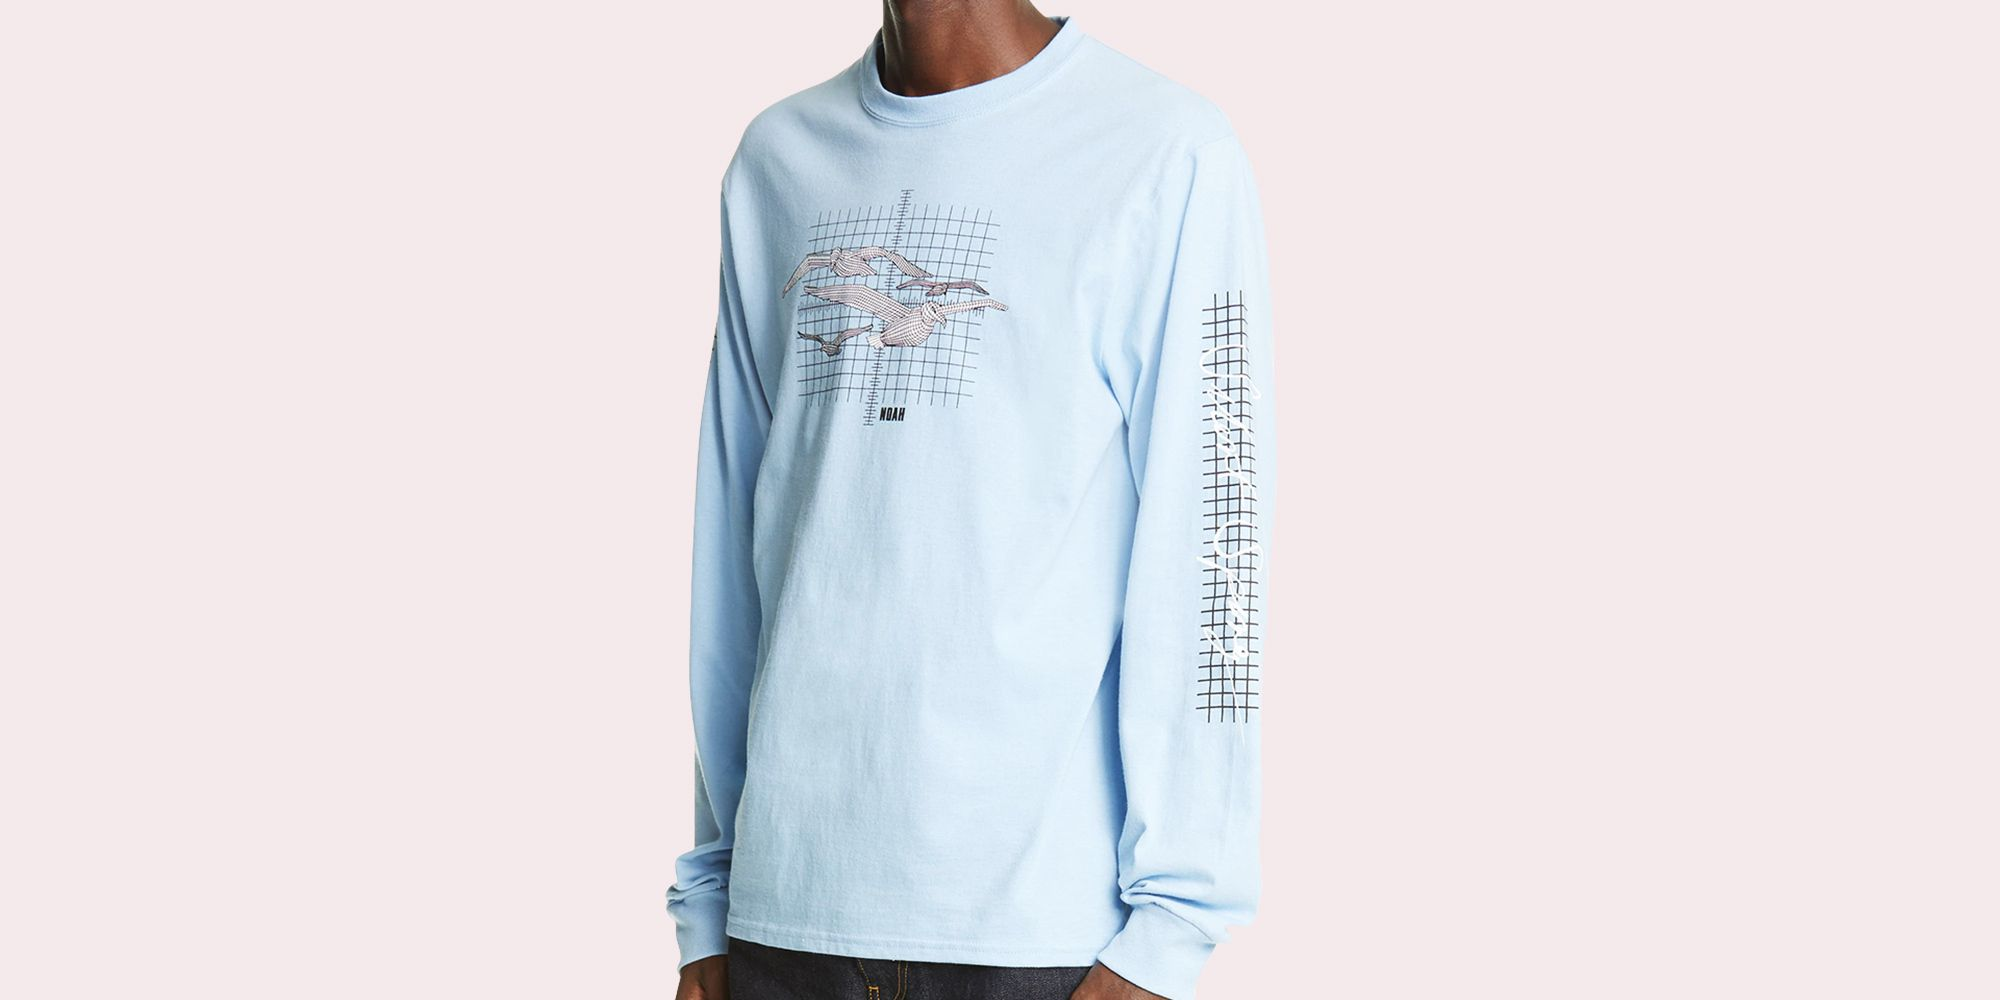 21 Best Long Sleeve T-Shirts for Men 2020 - Long-Sleeve Tees